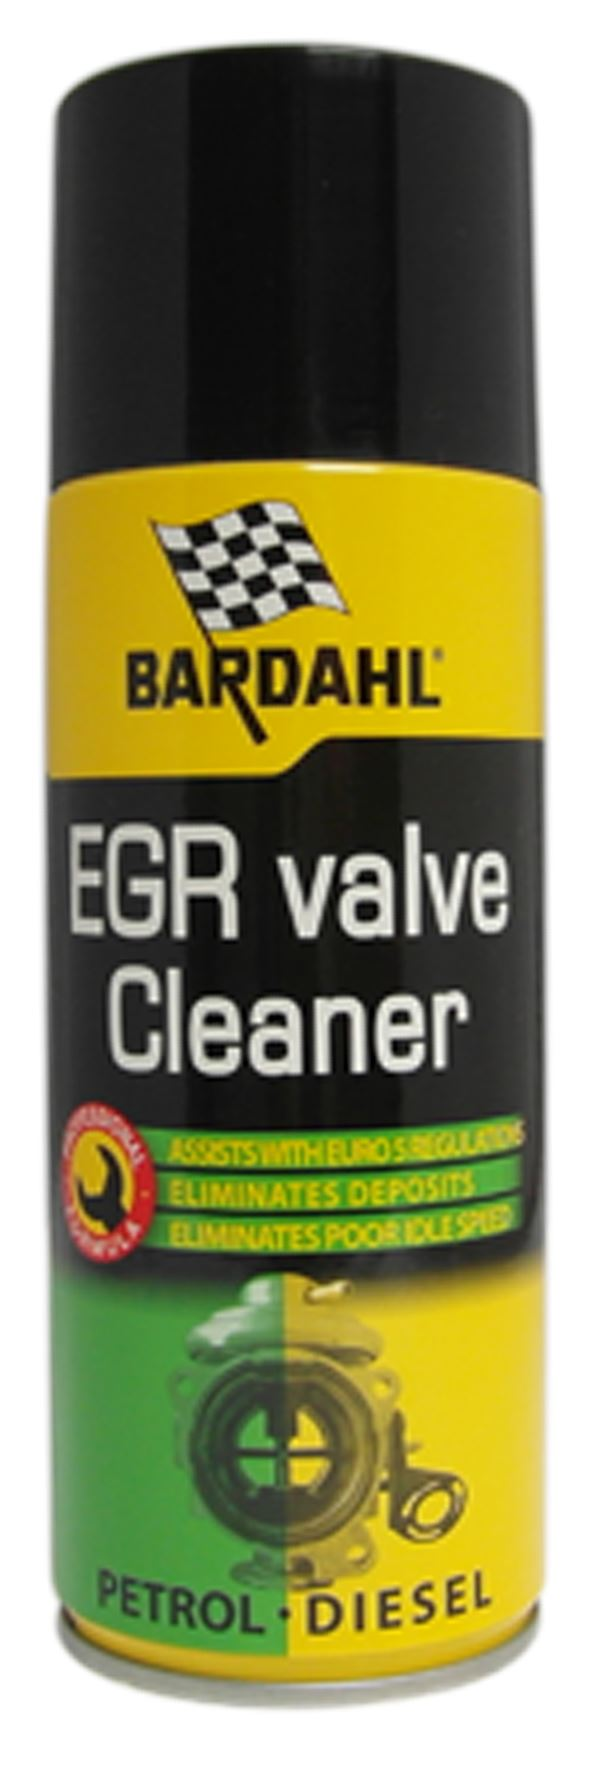 bardahl egr valve cleaner 400ml aerosol. Black Bedroom Furniture Sets. Home Design Ideas